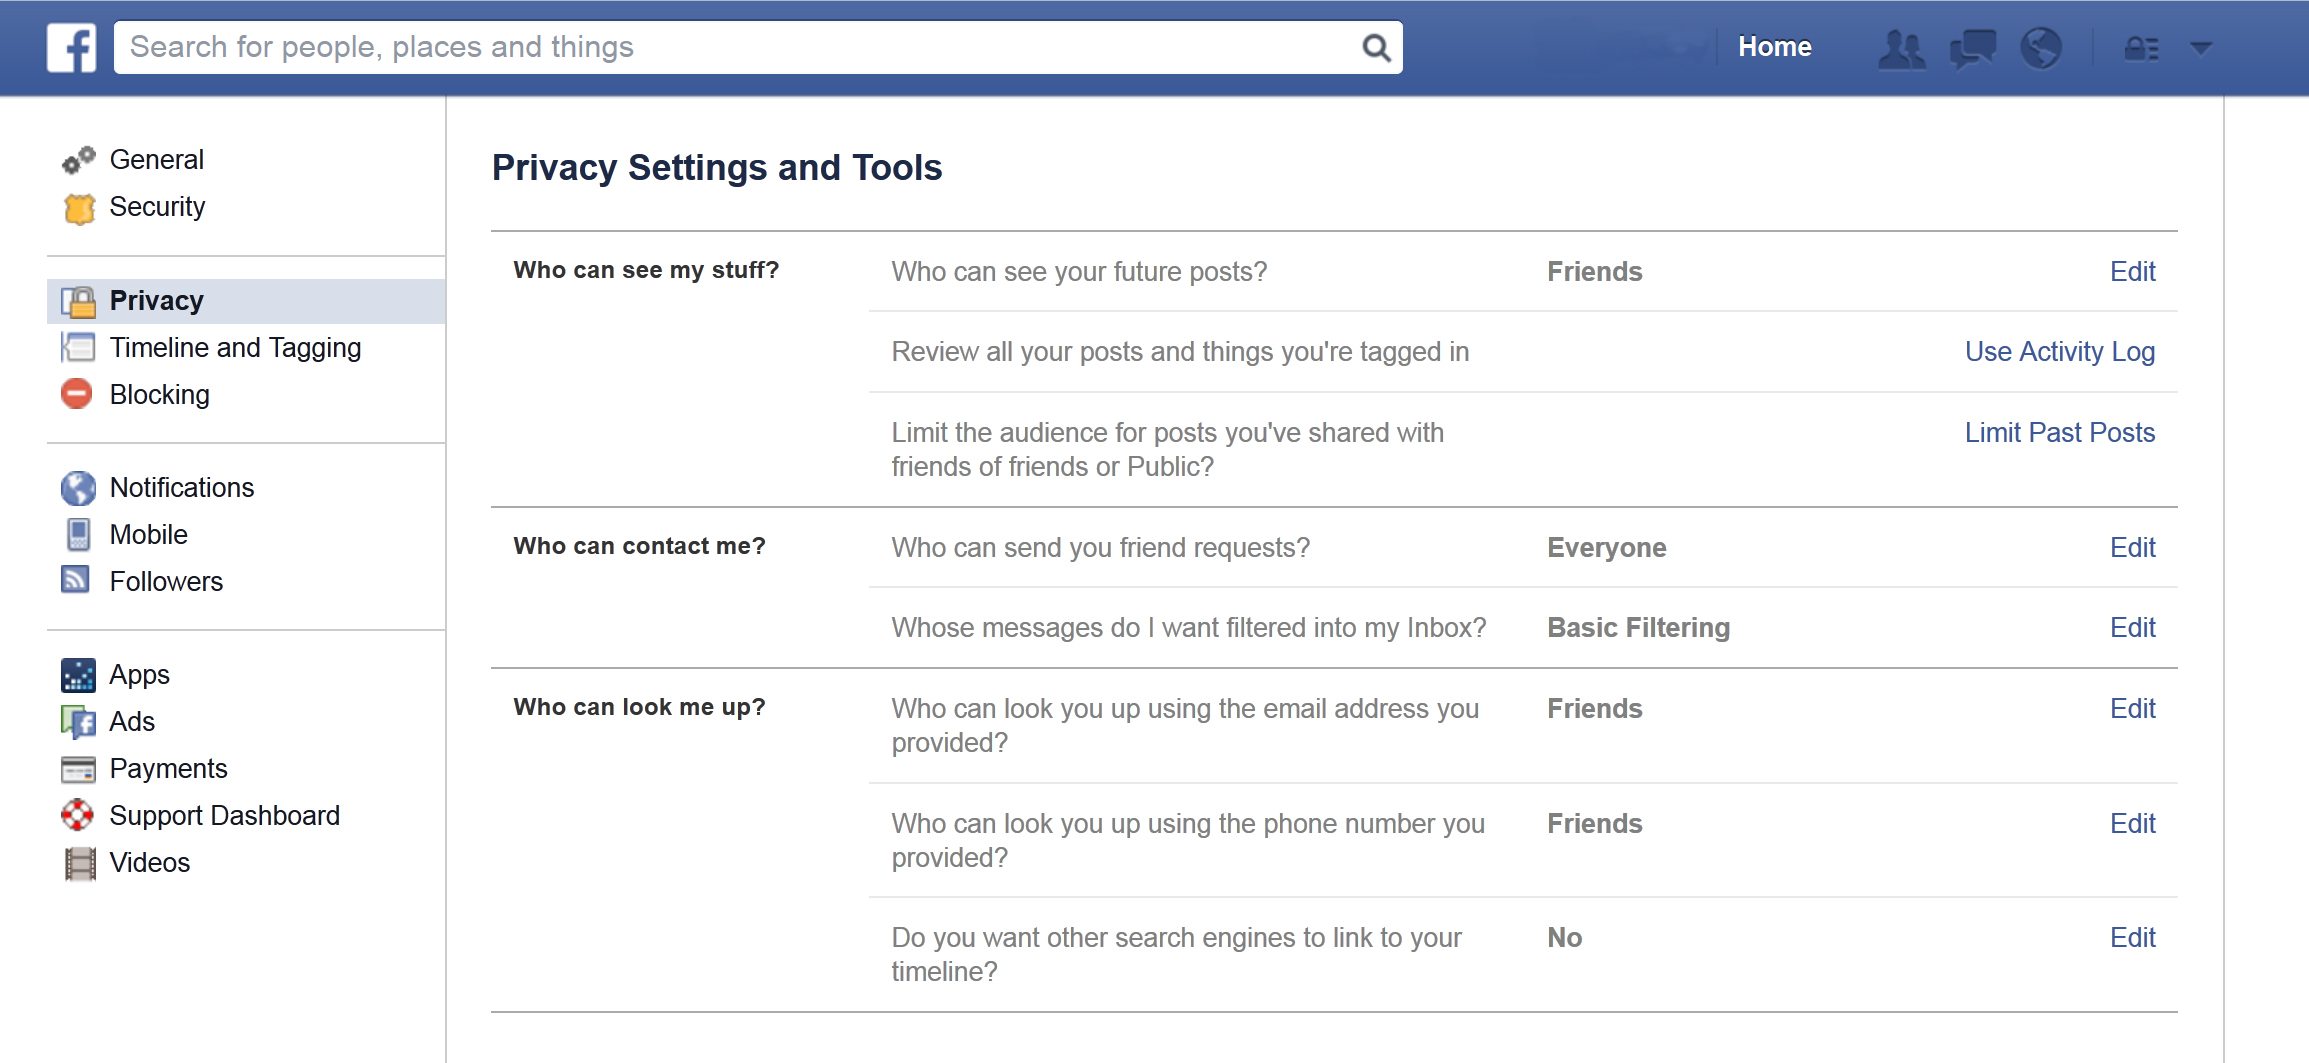 Facebook new privacy features photo tagging - dice insights